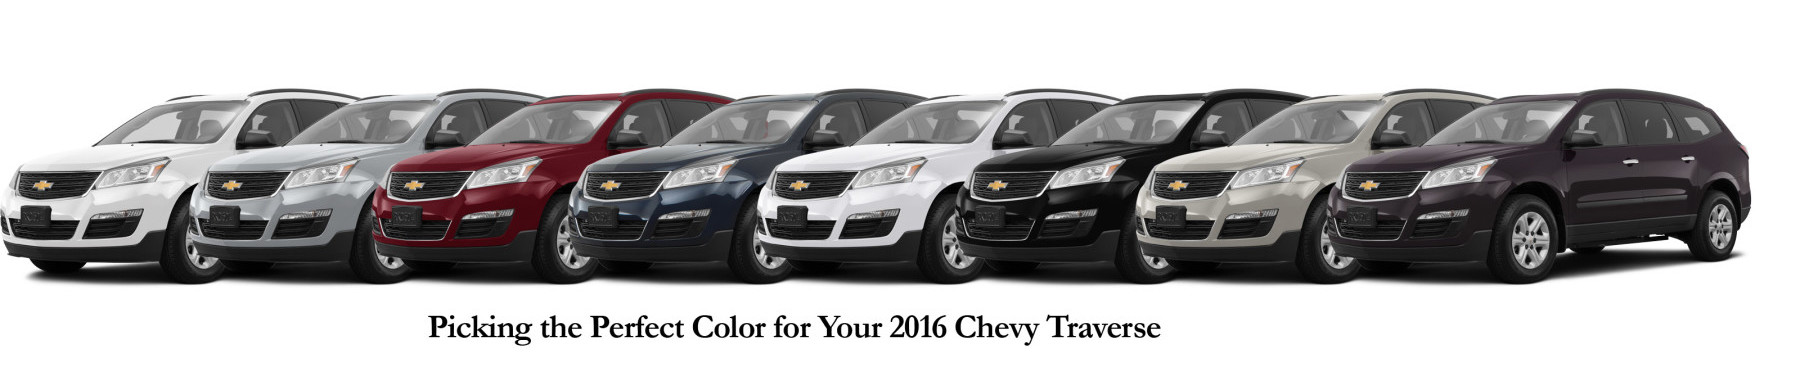 Picking The Perfect Color For Your 2016 Chevy Traverse Jay Hodge Chevrolet